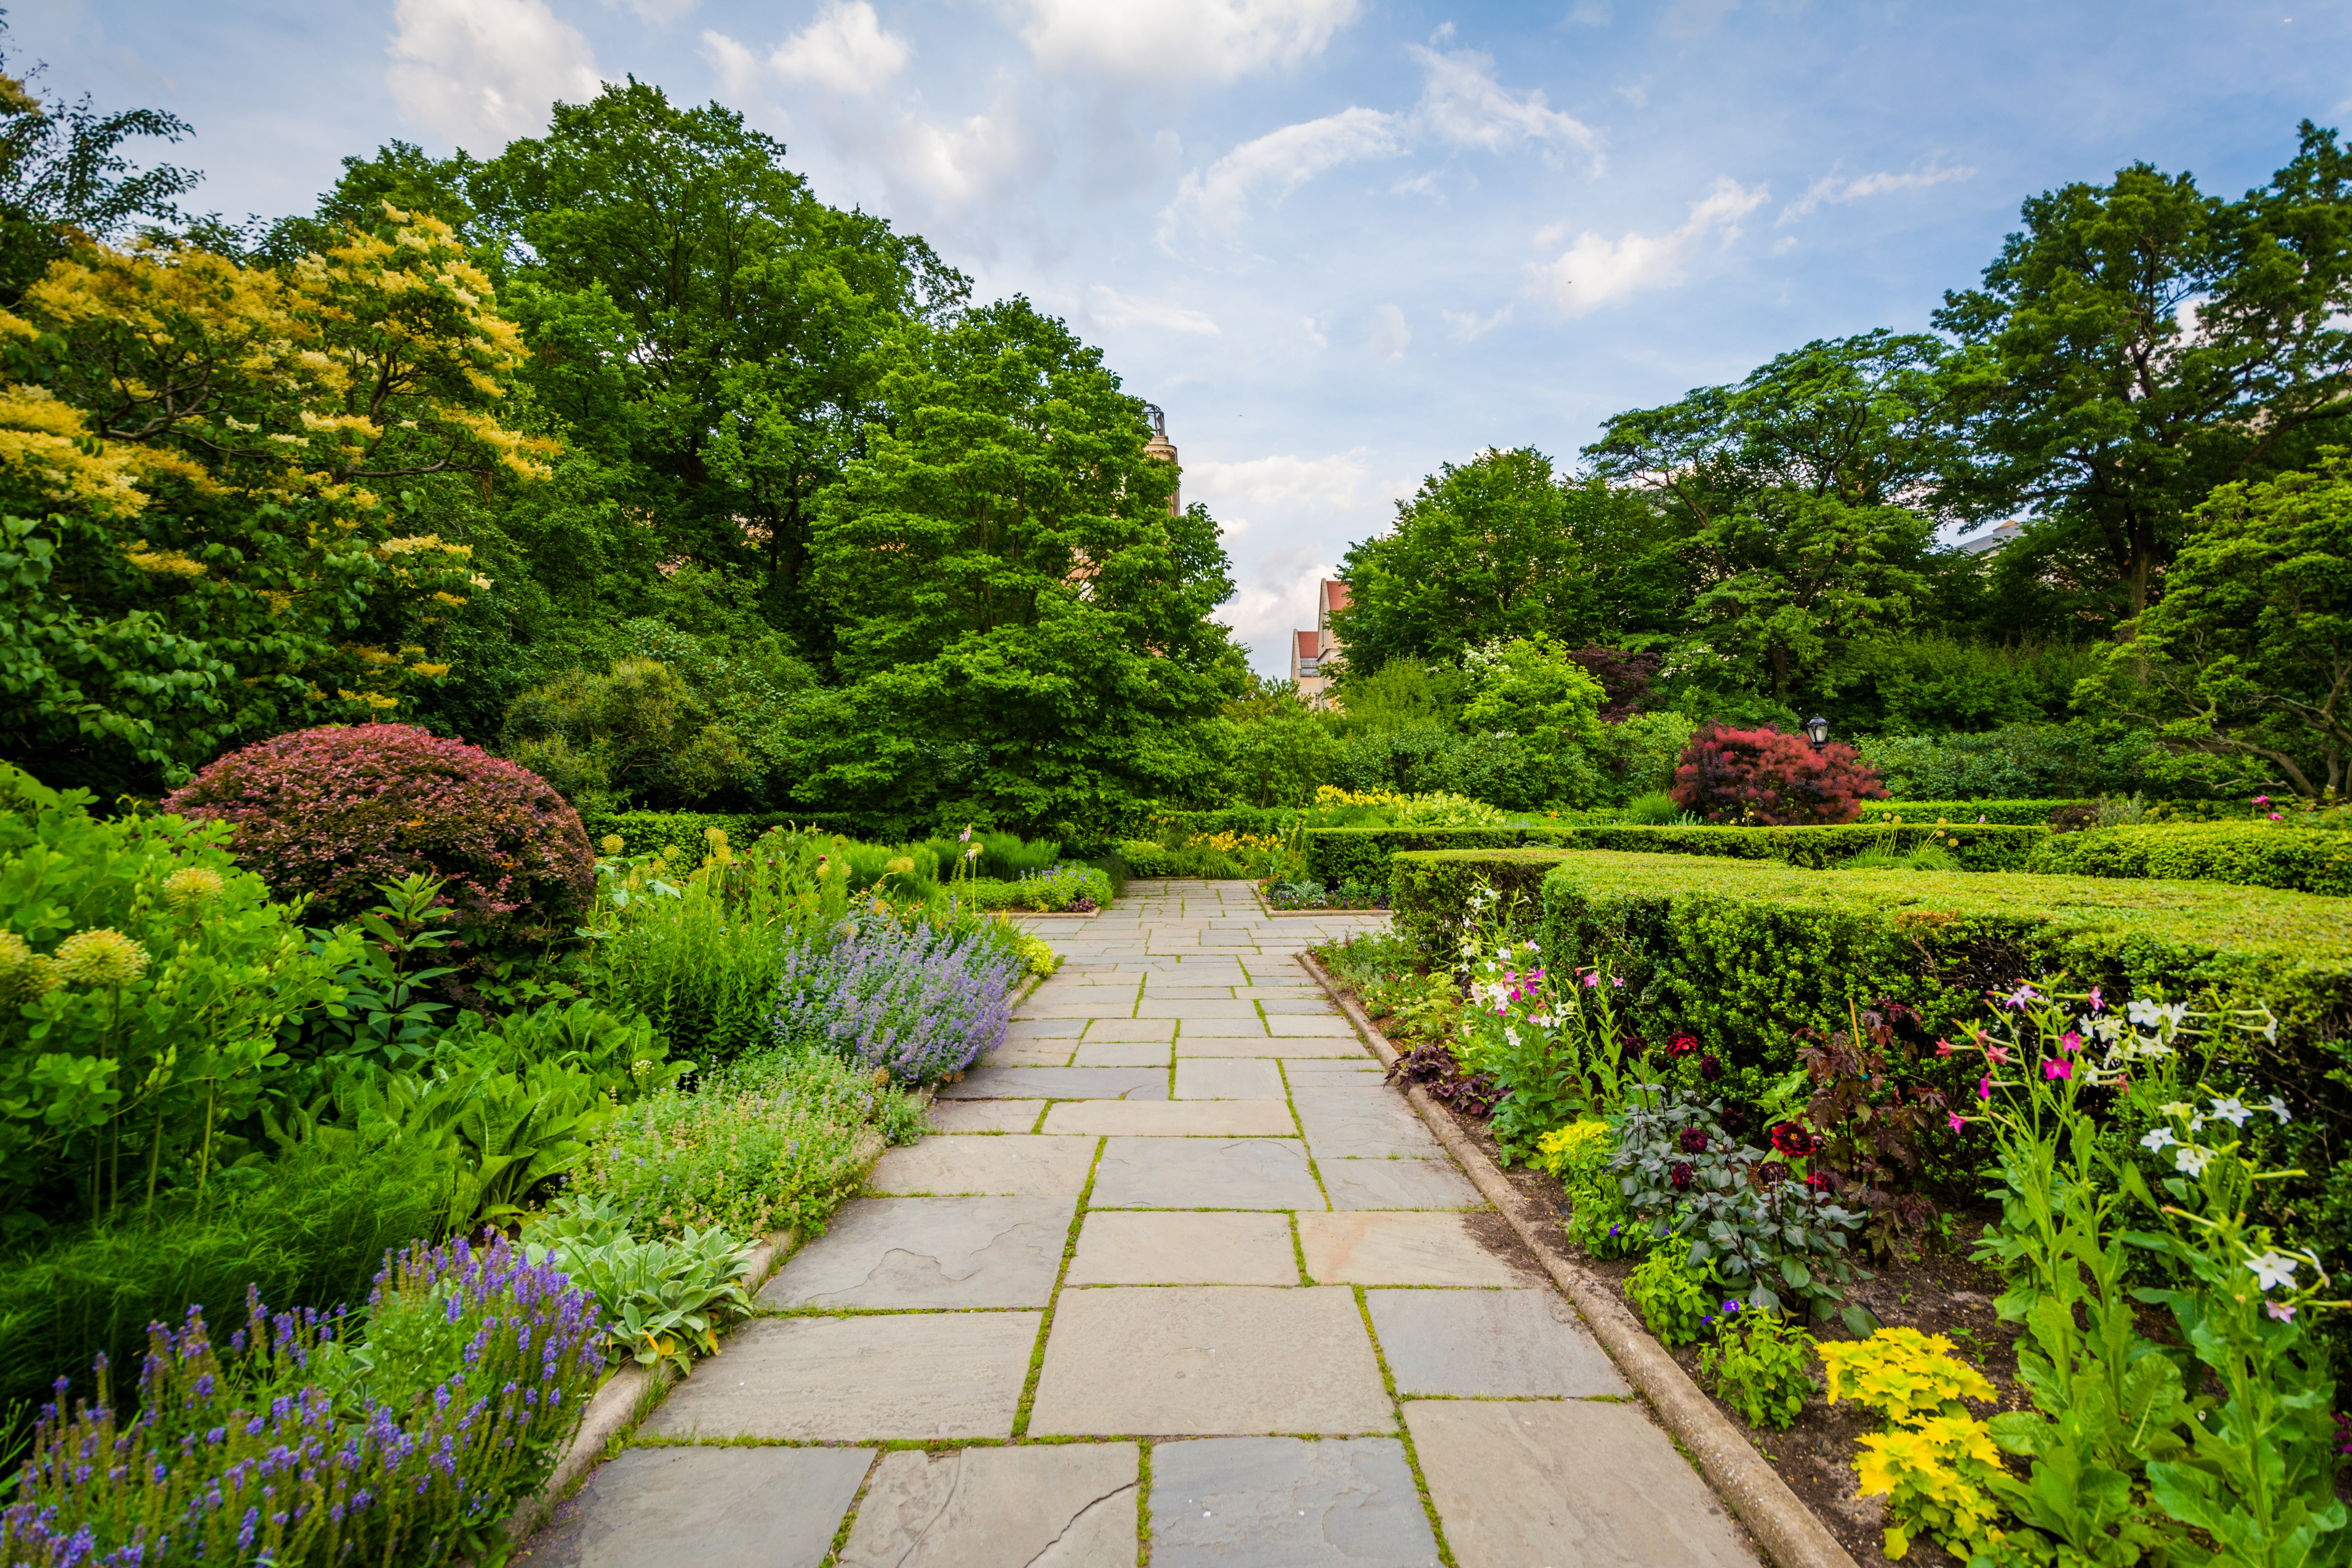 A garden path. On both sides of the path are various plants, flowers, and shrubbery. In the distance are trees.